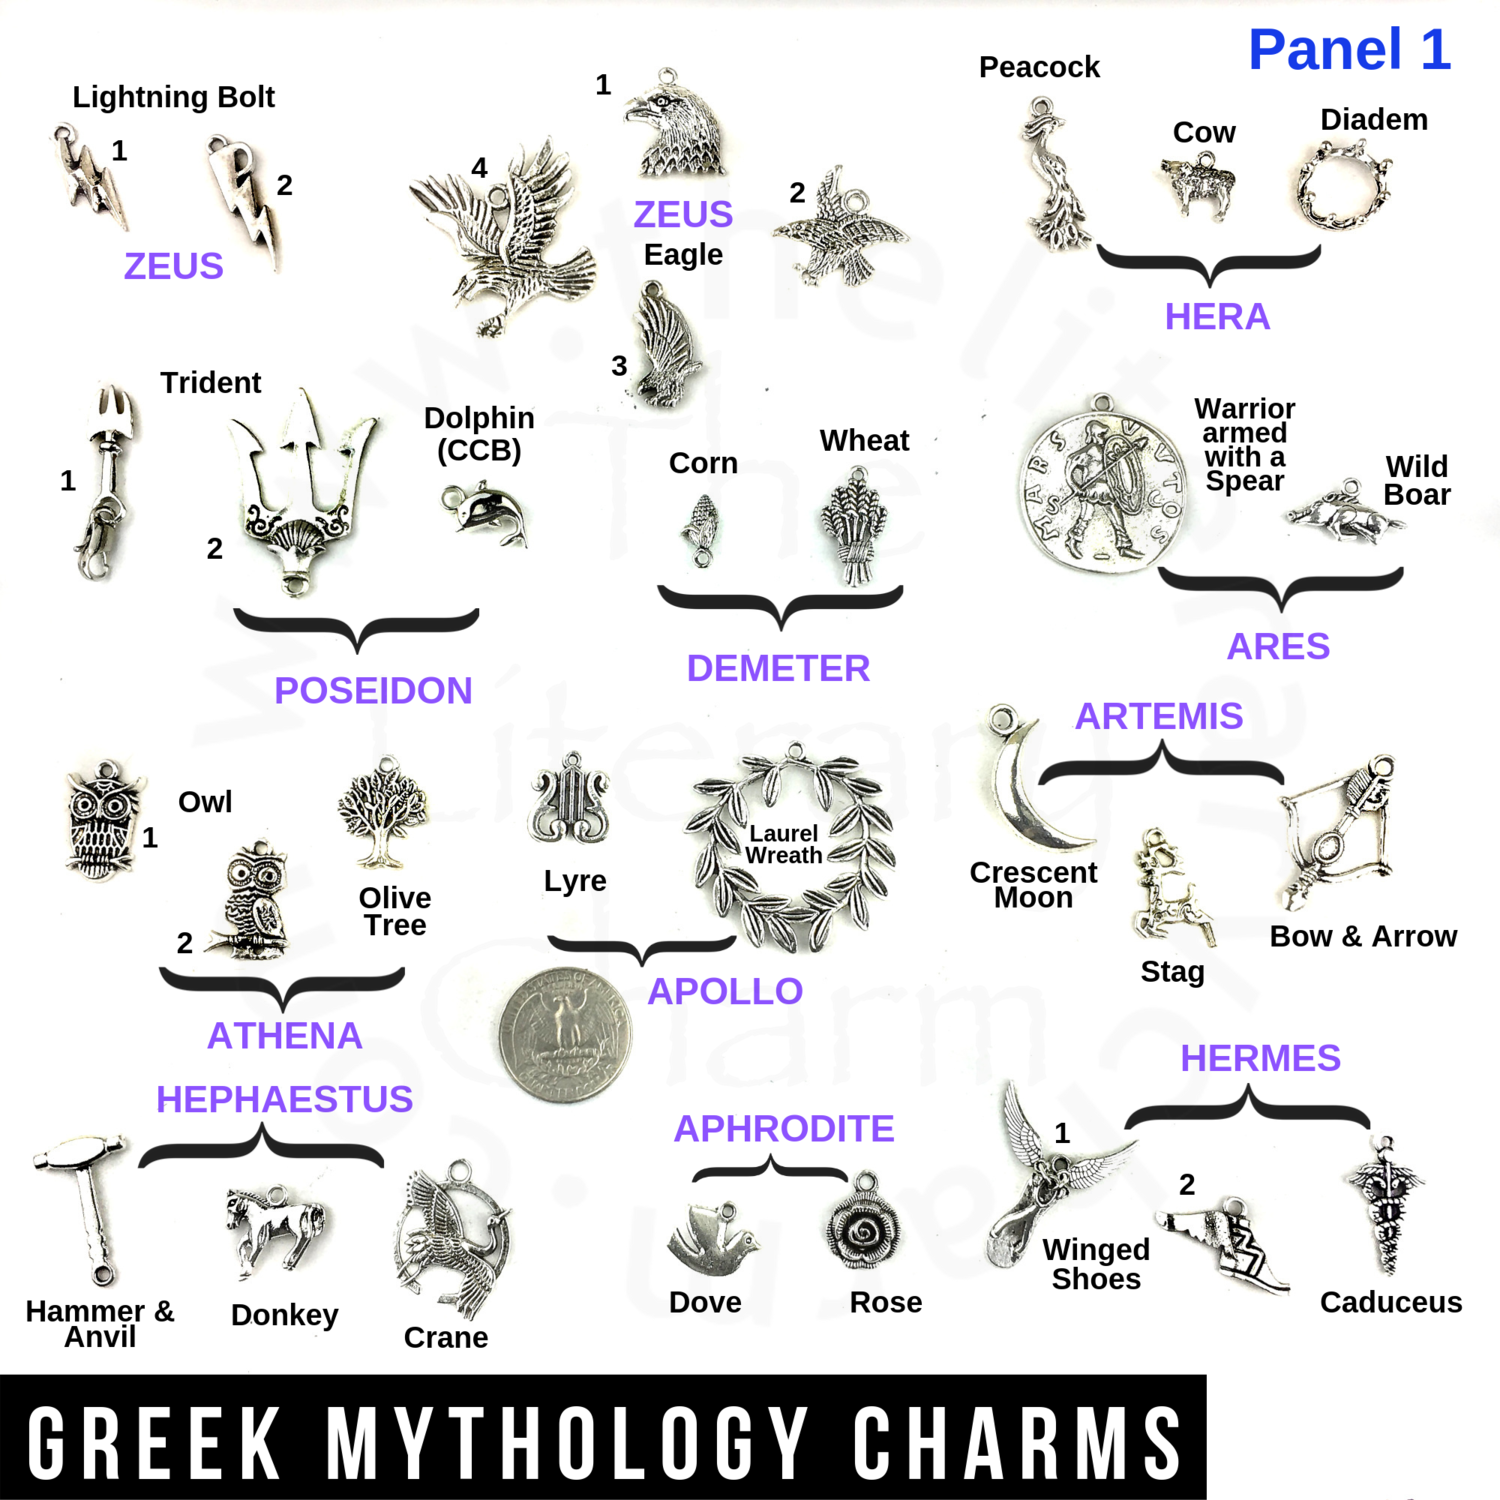 Greek Mythology Charms Greek Gods Goddesses Symbols Greek Demigods Titans Heroes Olympus Statues Pewter Pendants Costume Jewelry Party